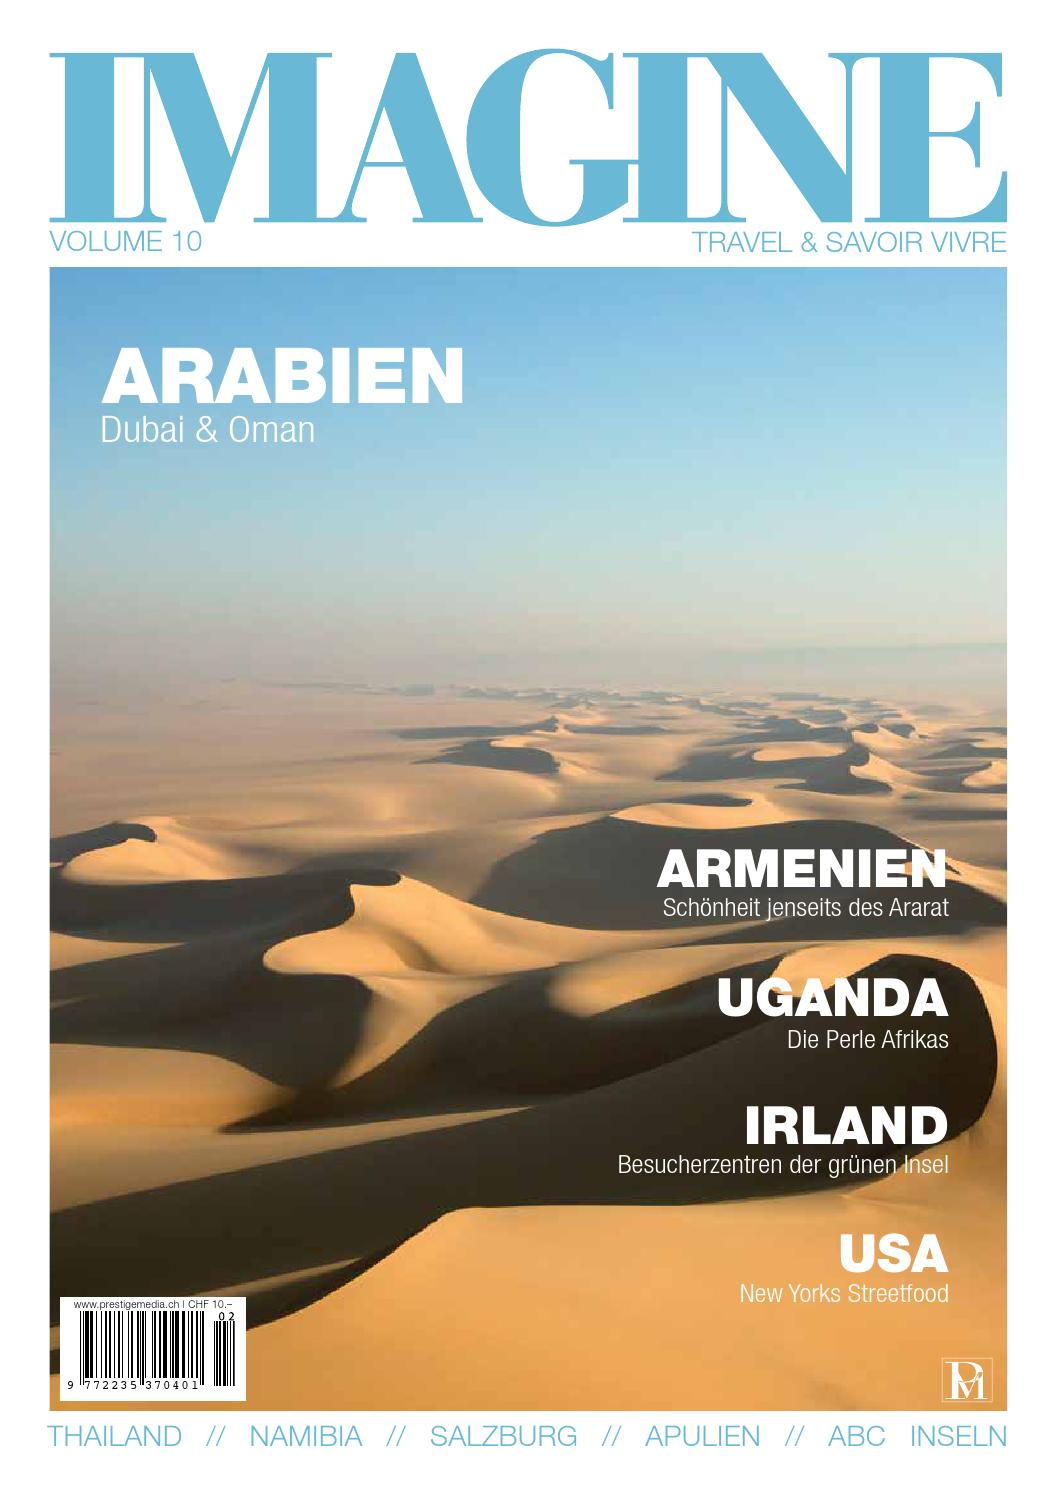 IMAGINE 02/13 Volume 10 By RundschauMEDIEN AG   Issuu